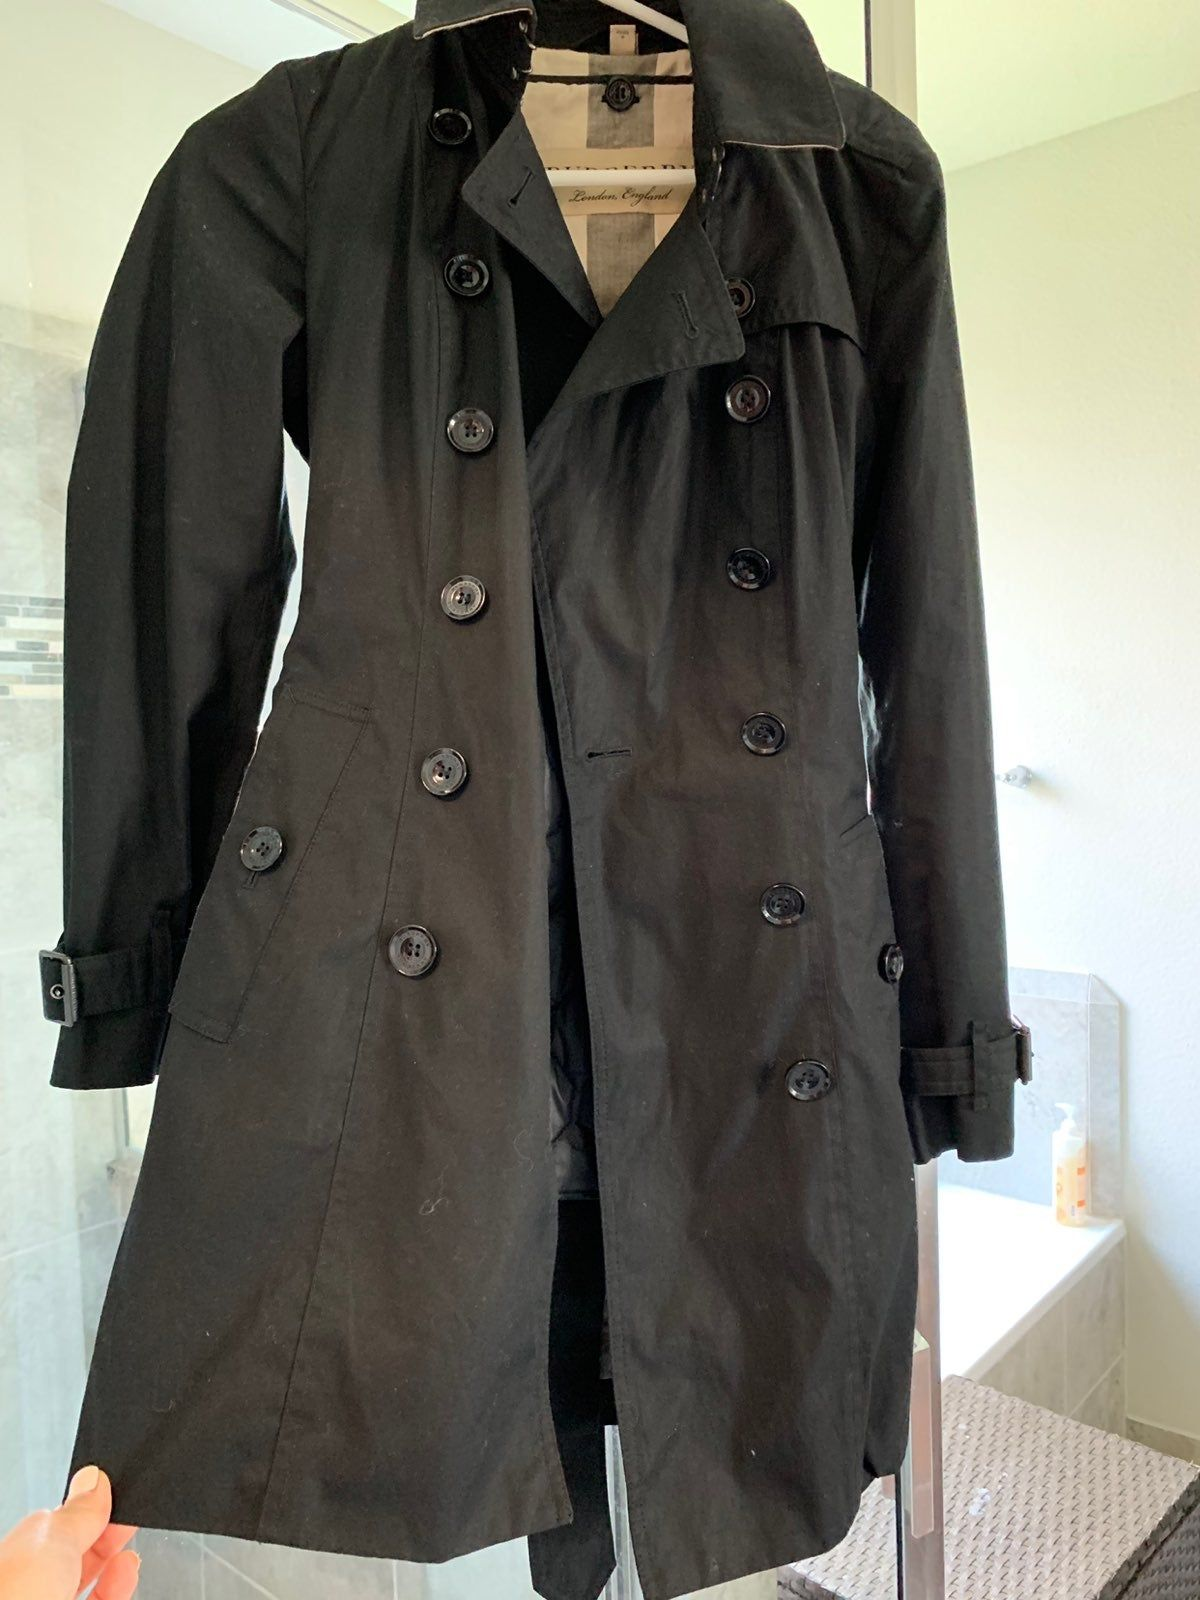 Burberry Black Trench Coat Size 6 Double Layers Used In Great Condition Also Dry Cleaned Ready For Use Trench Coat Burberry Trench Burberry Trench Coat